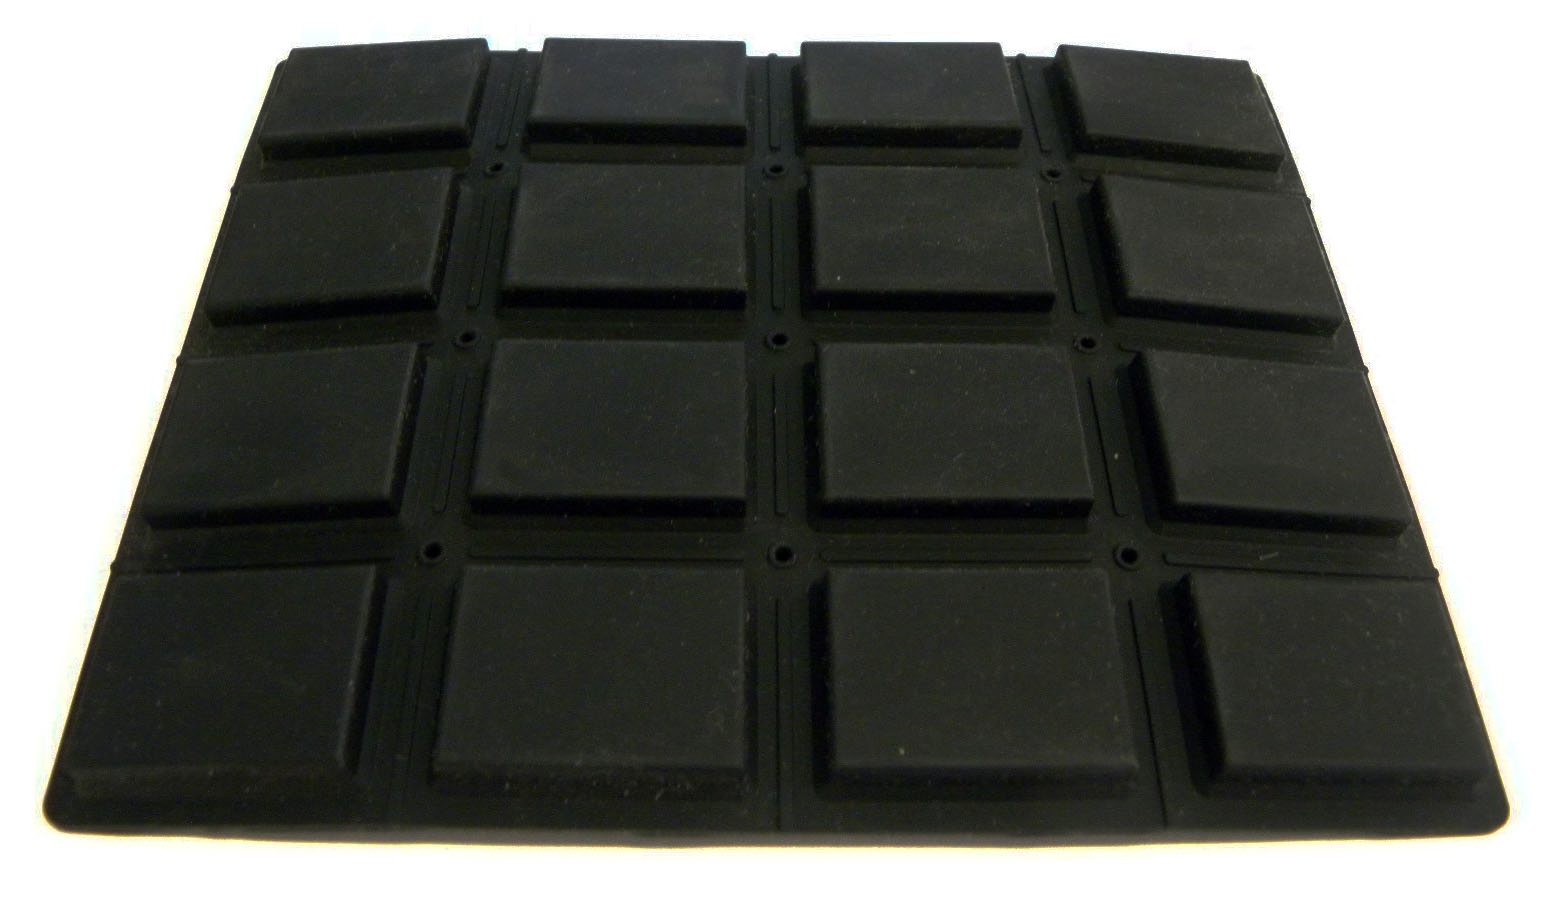 akai-mpc1000-mpc-1000-black-rubber-pad